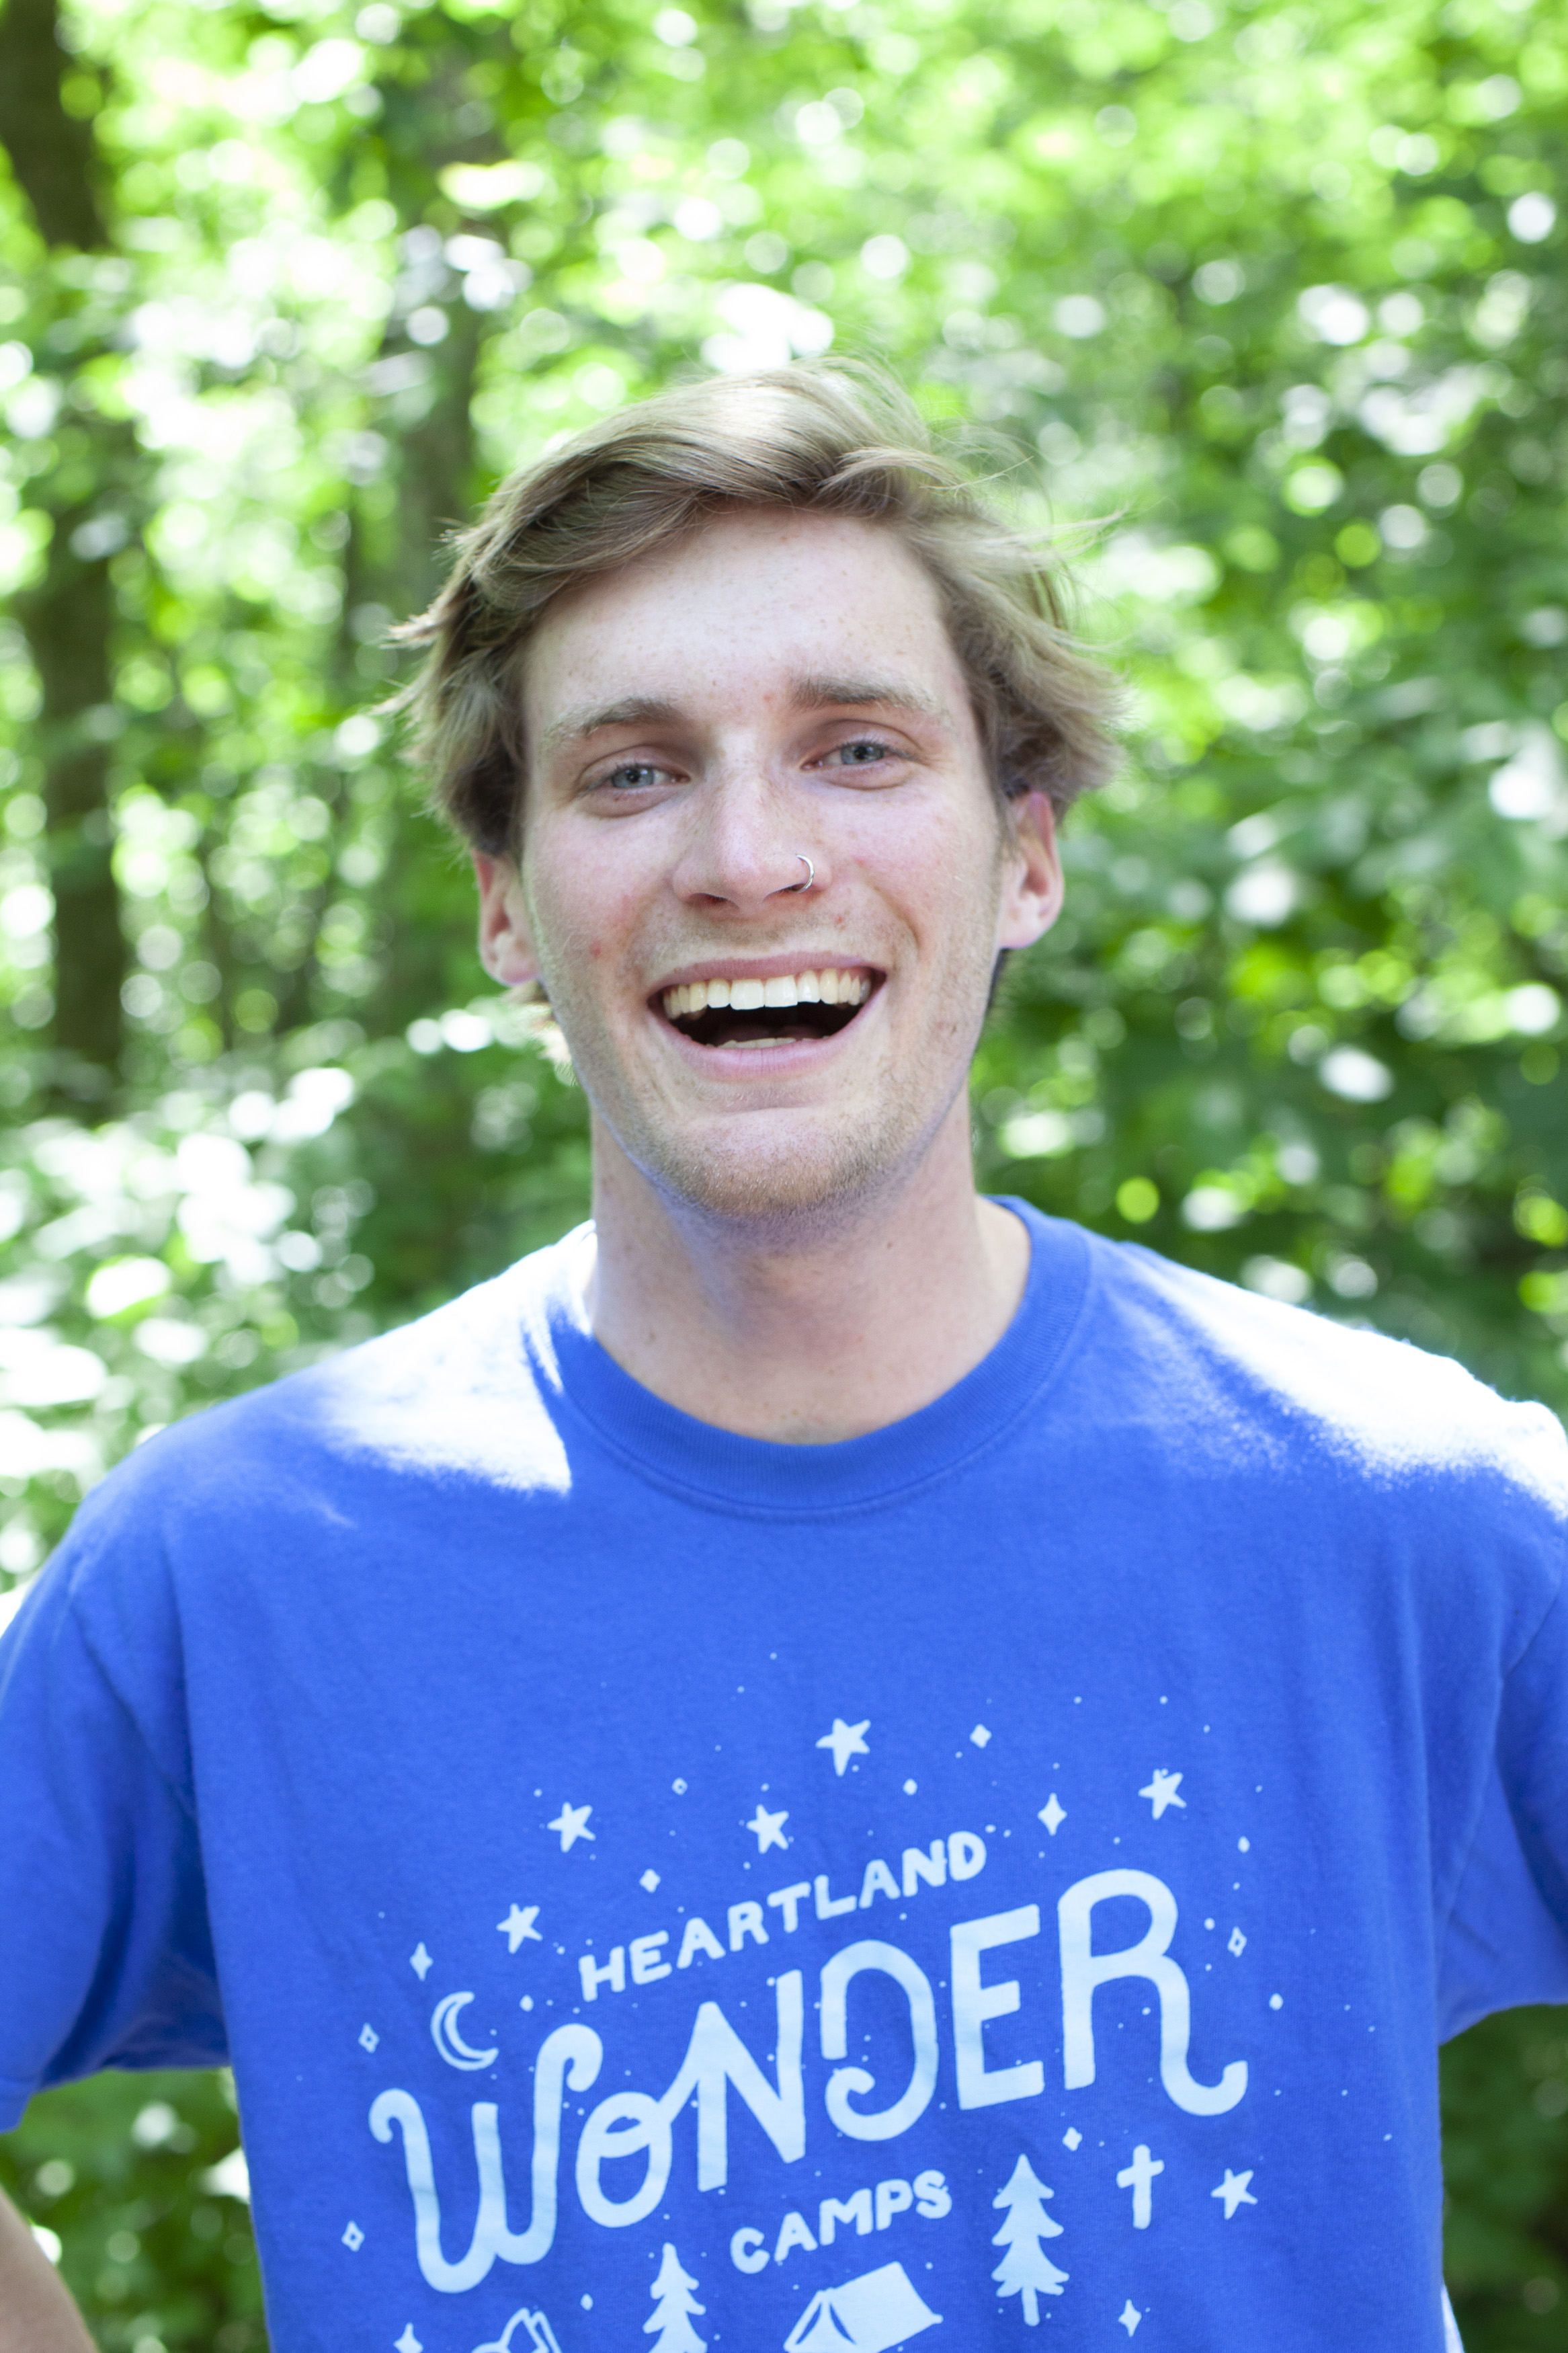 Cameron Sorter is a college graduate planning to enter into the Peace Corps. His favorite scripture is Matthew 6. Cam loves working at Heartland— he is passionate about impacting lives for Jesus.